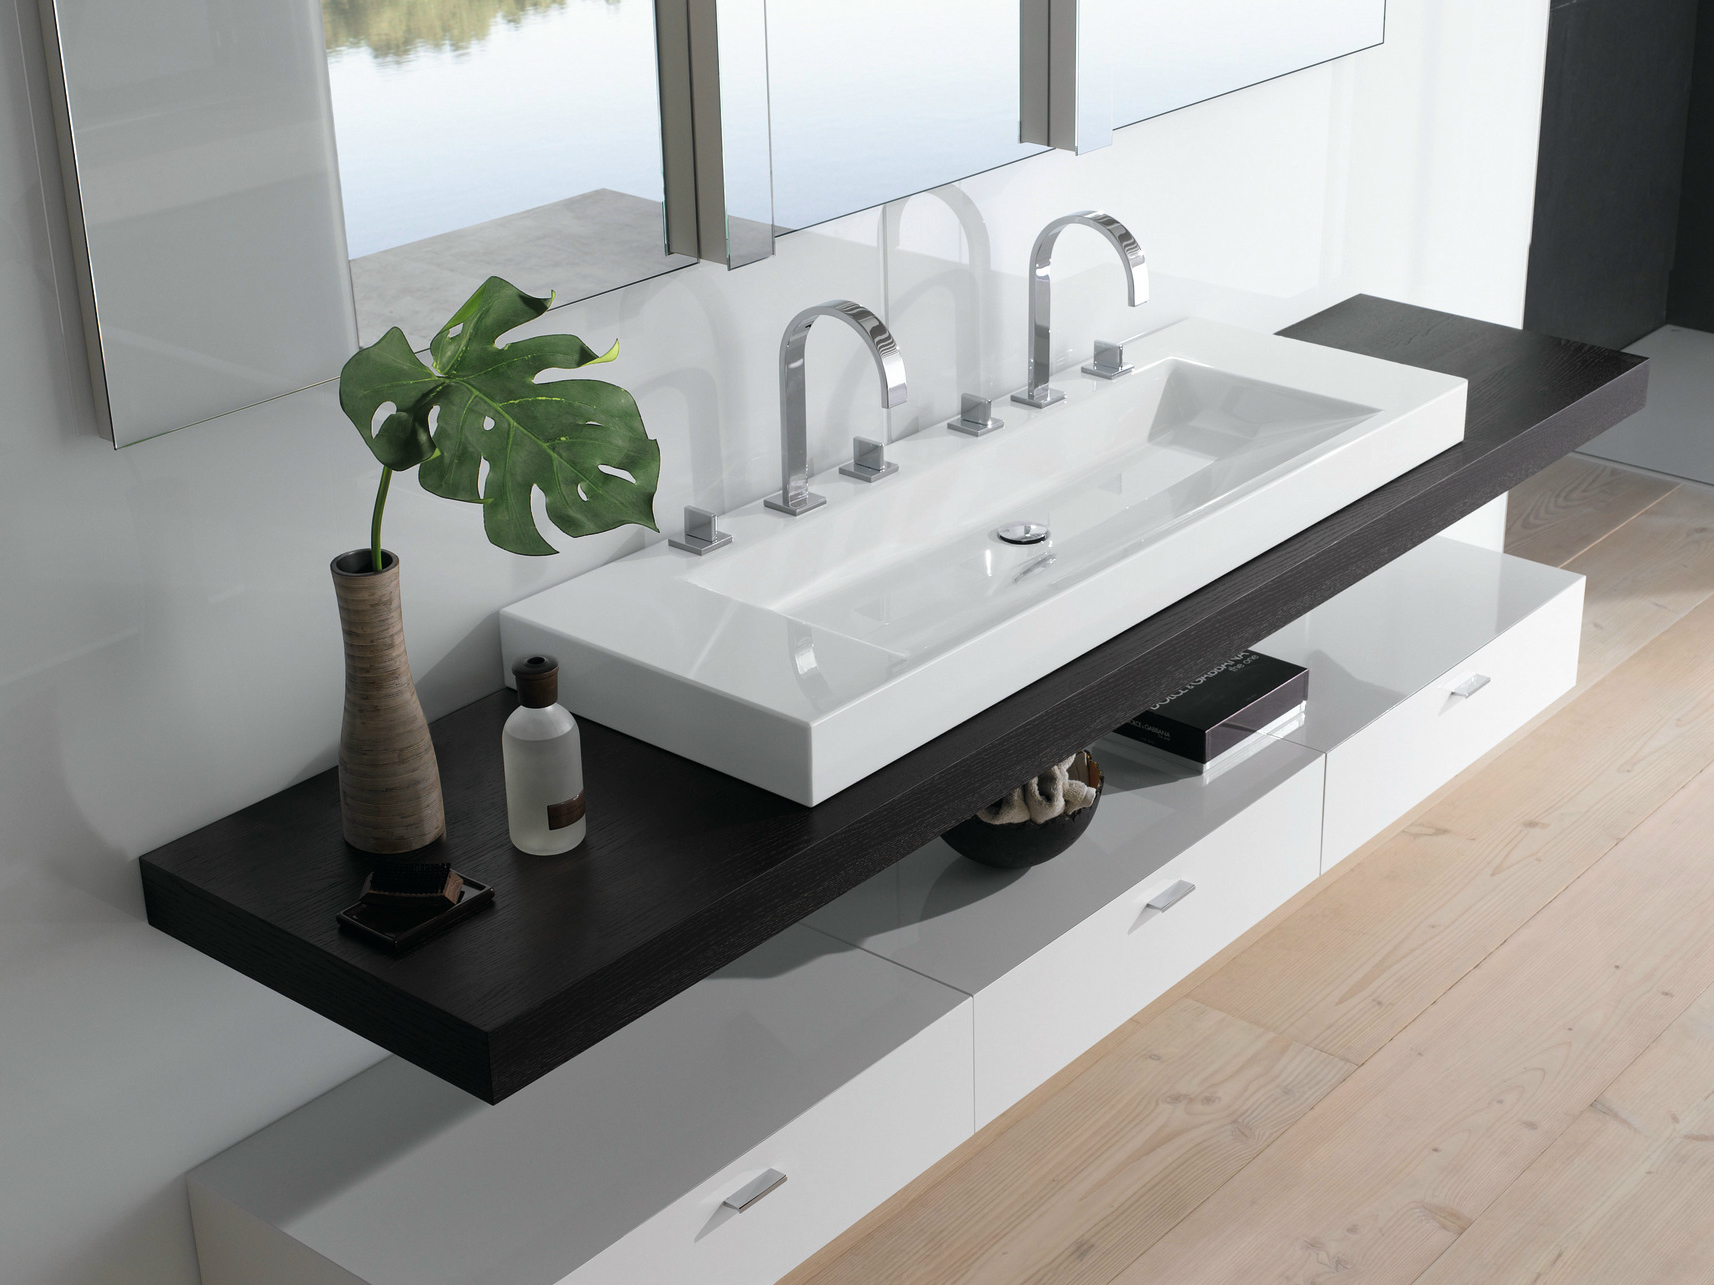 Betteaqua lavabo double by bette design schmiddem design for Lavabos doubles salle bain